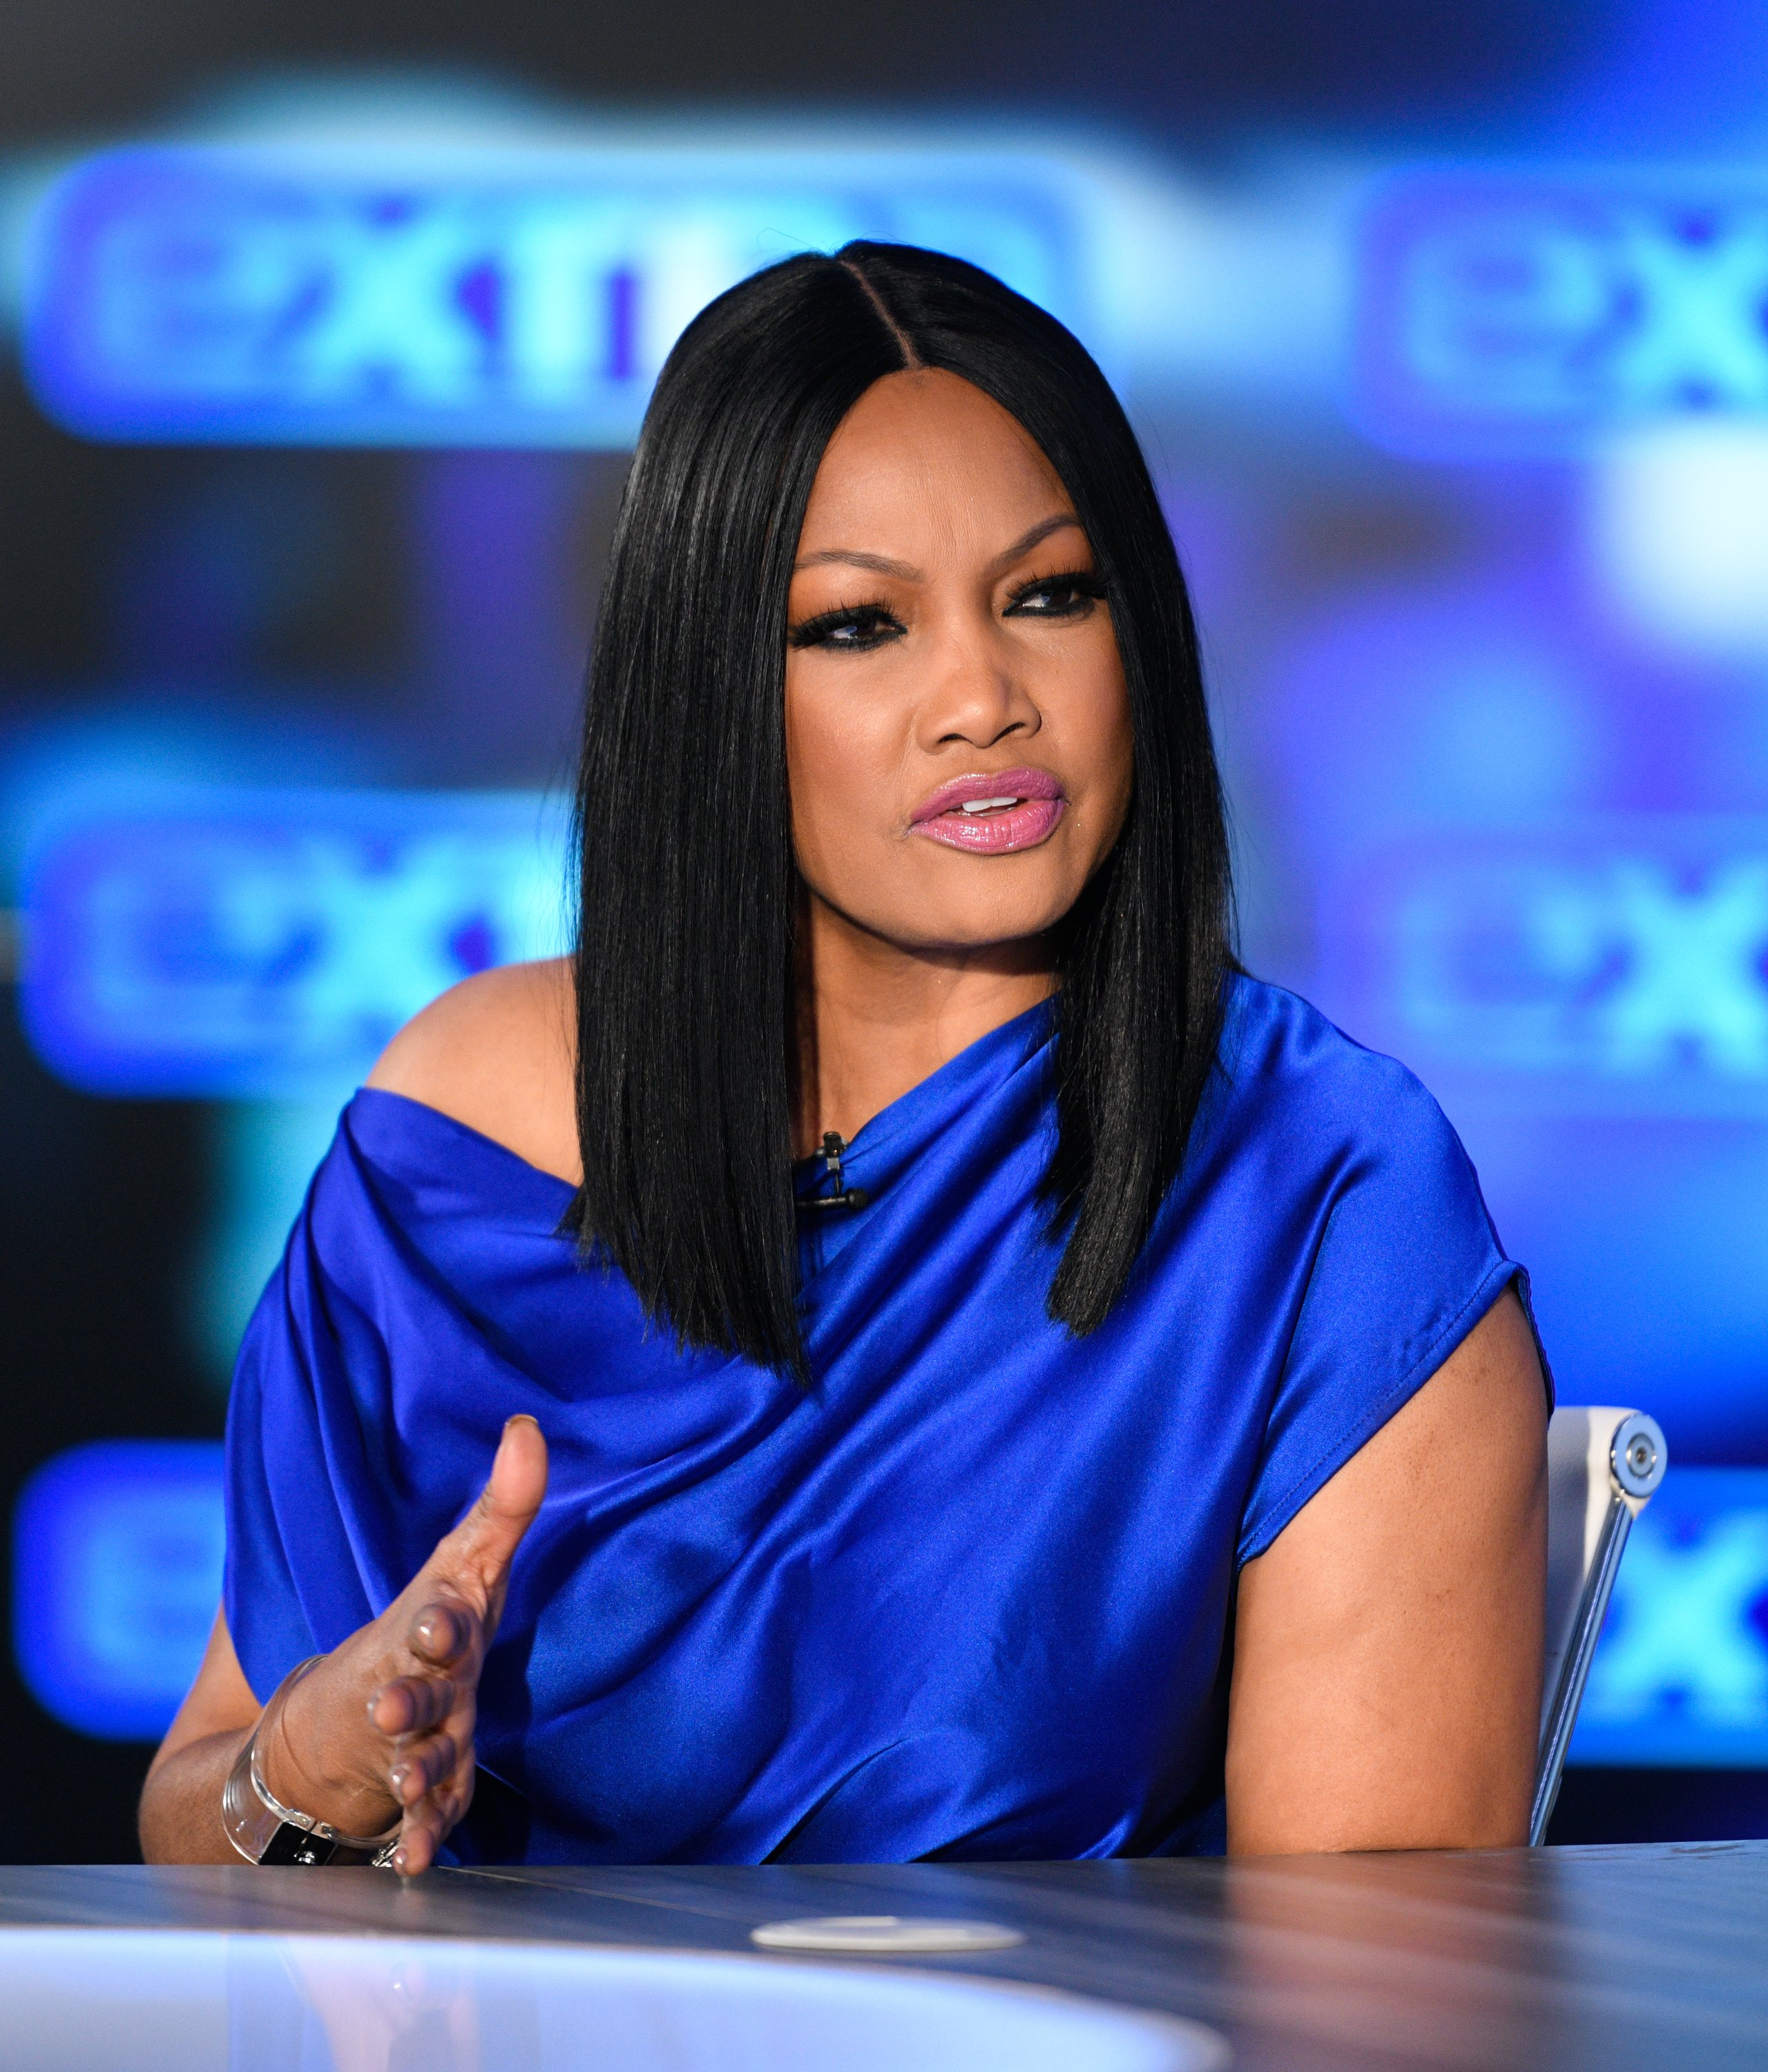 """Garcelle Beauvais at """"Extra"""" in Burbank Studios on November 26, 2019 in Burbank, California 